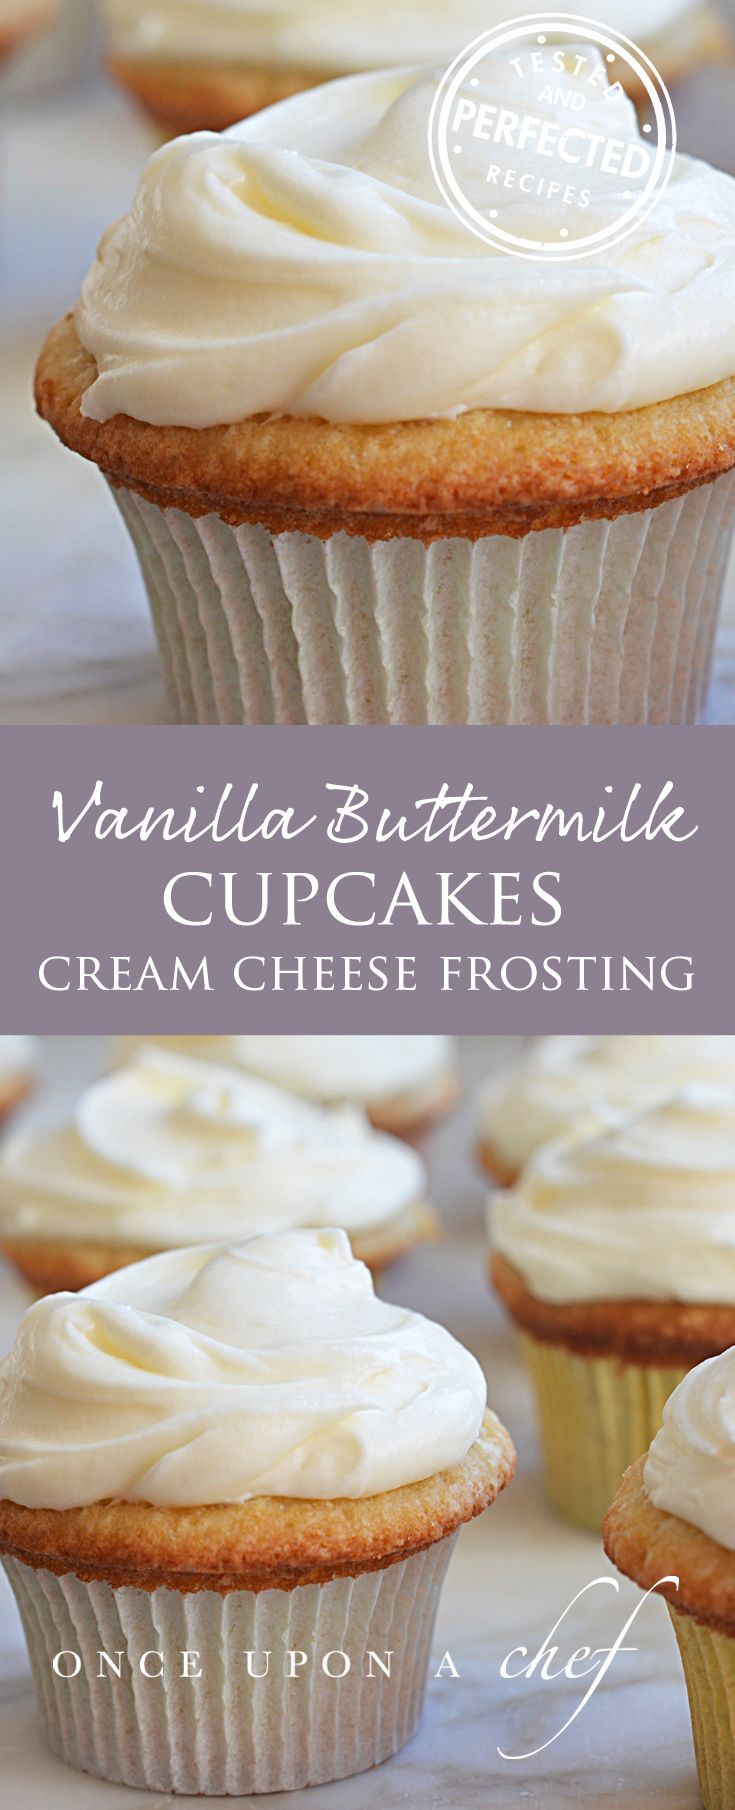 Vanilla Cupcakes with Cream Cheese Frosting - Once Upon a Chef